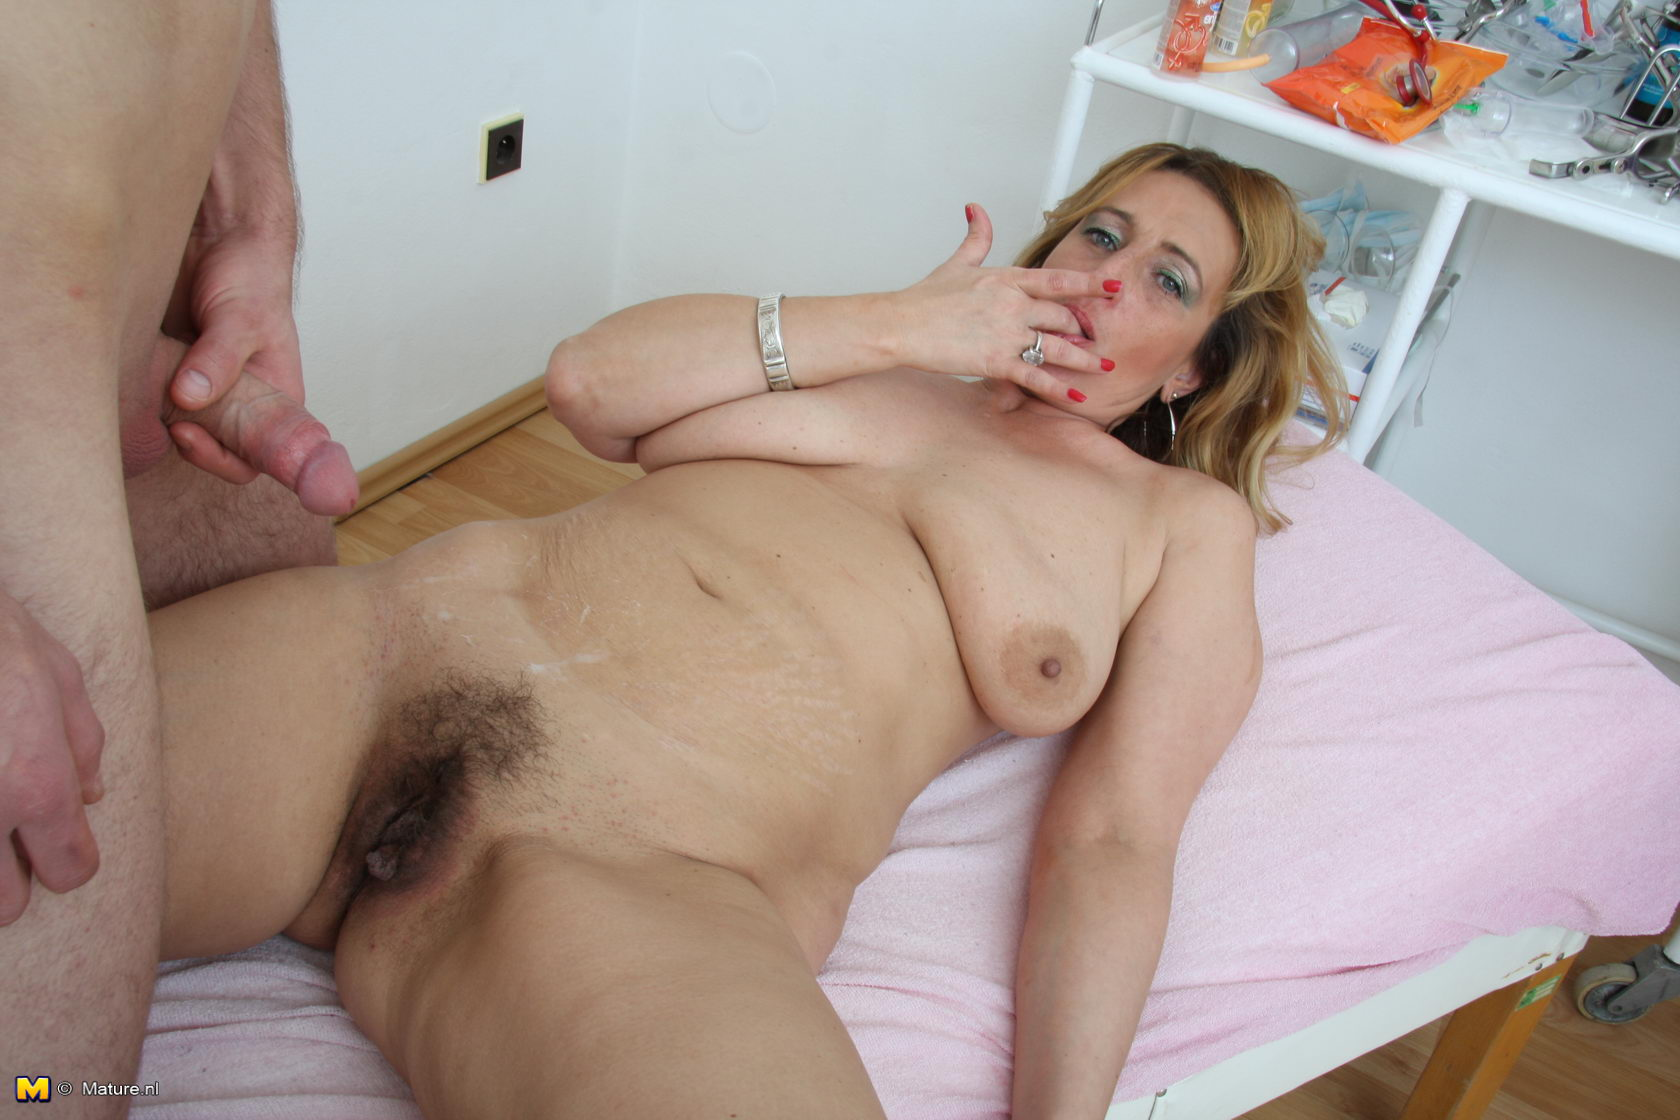 Free Gallery Mature Milf Porn Mature Free Galleries Doctor Gallery ...